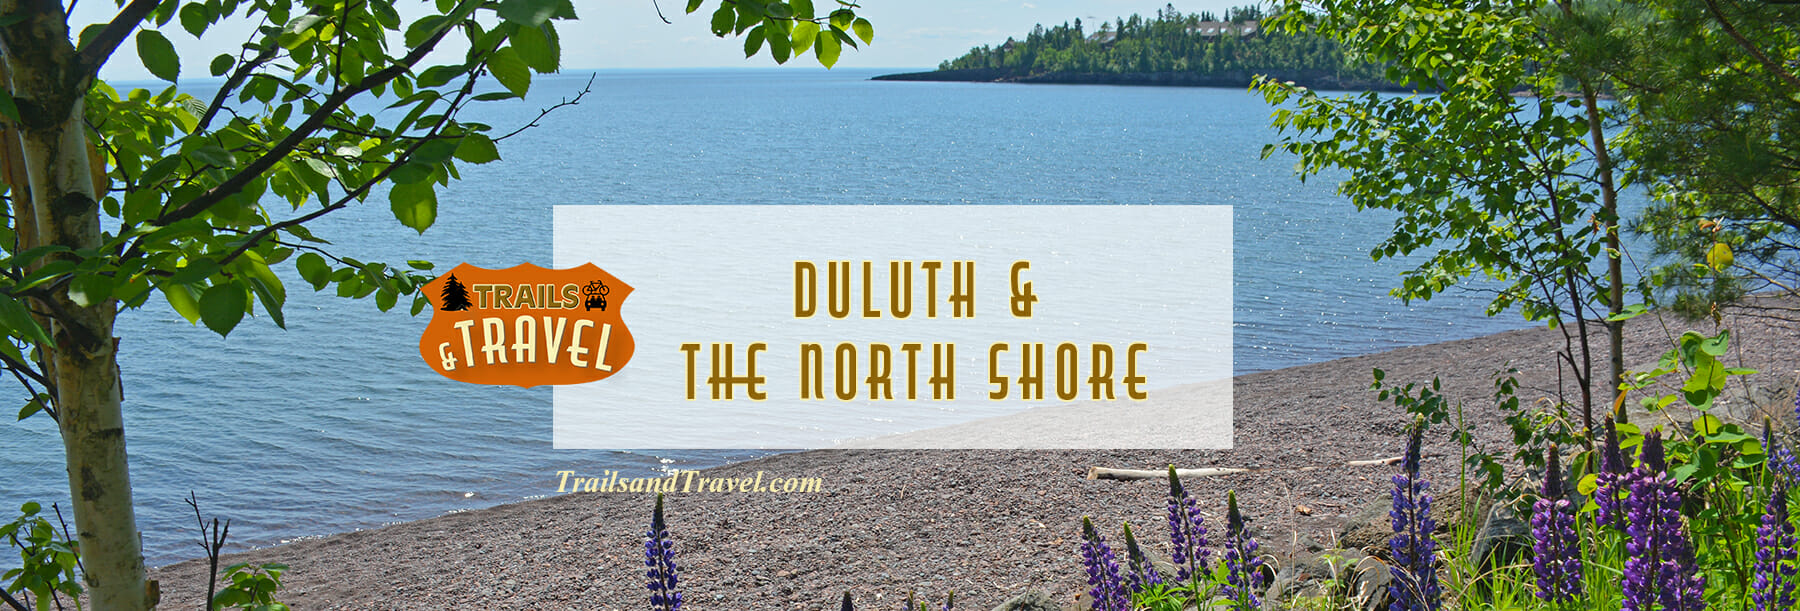 Duluth & The North Shore